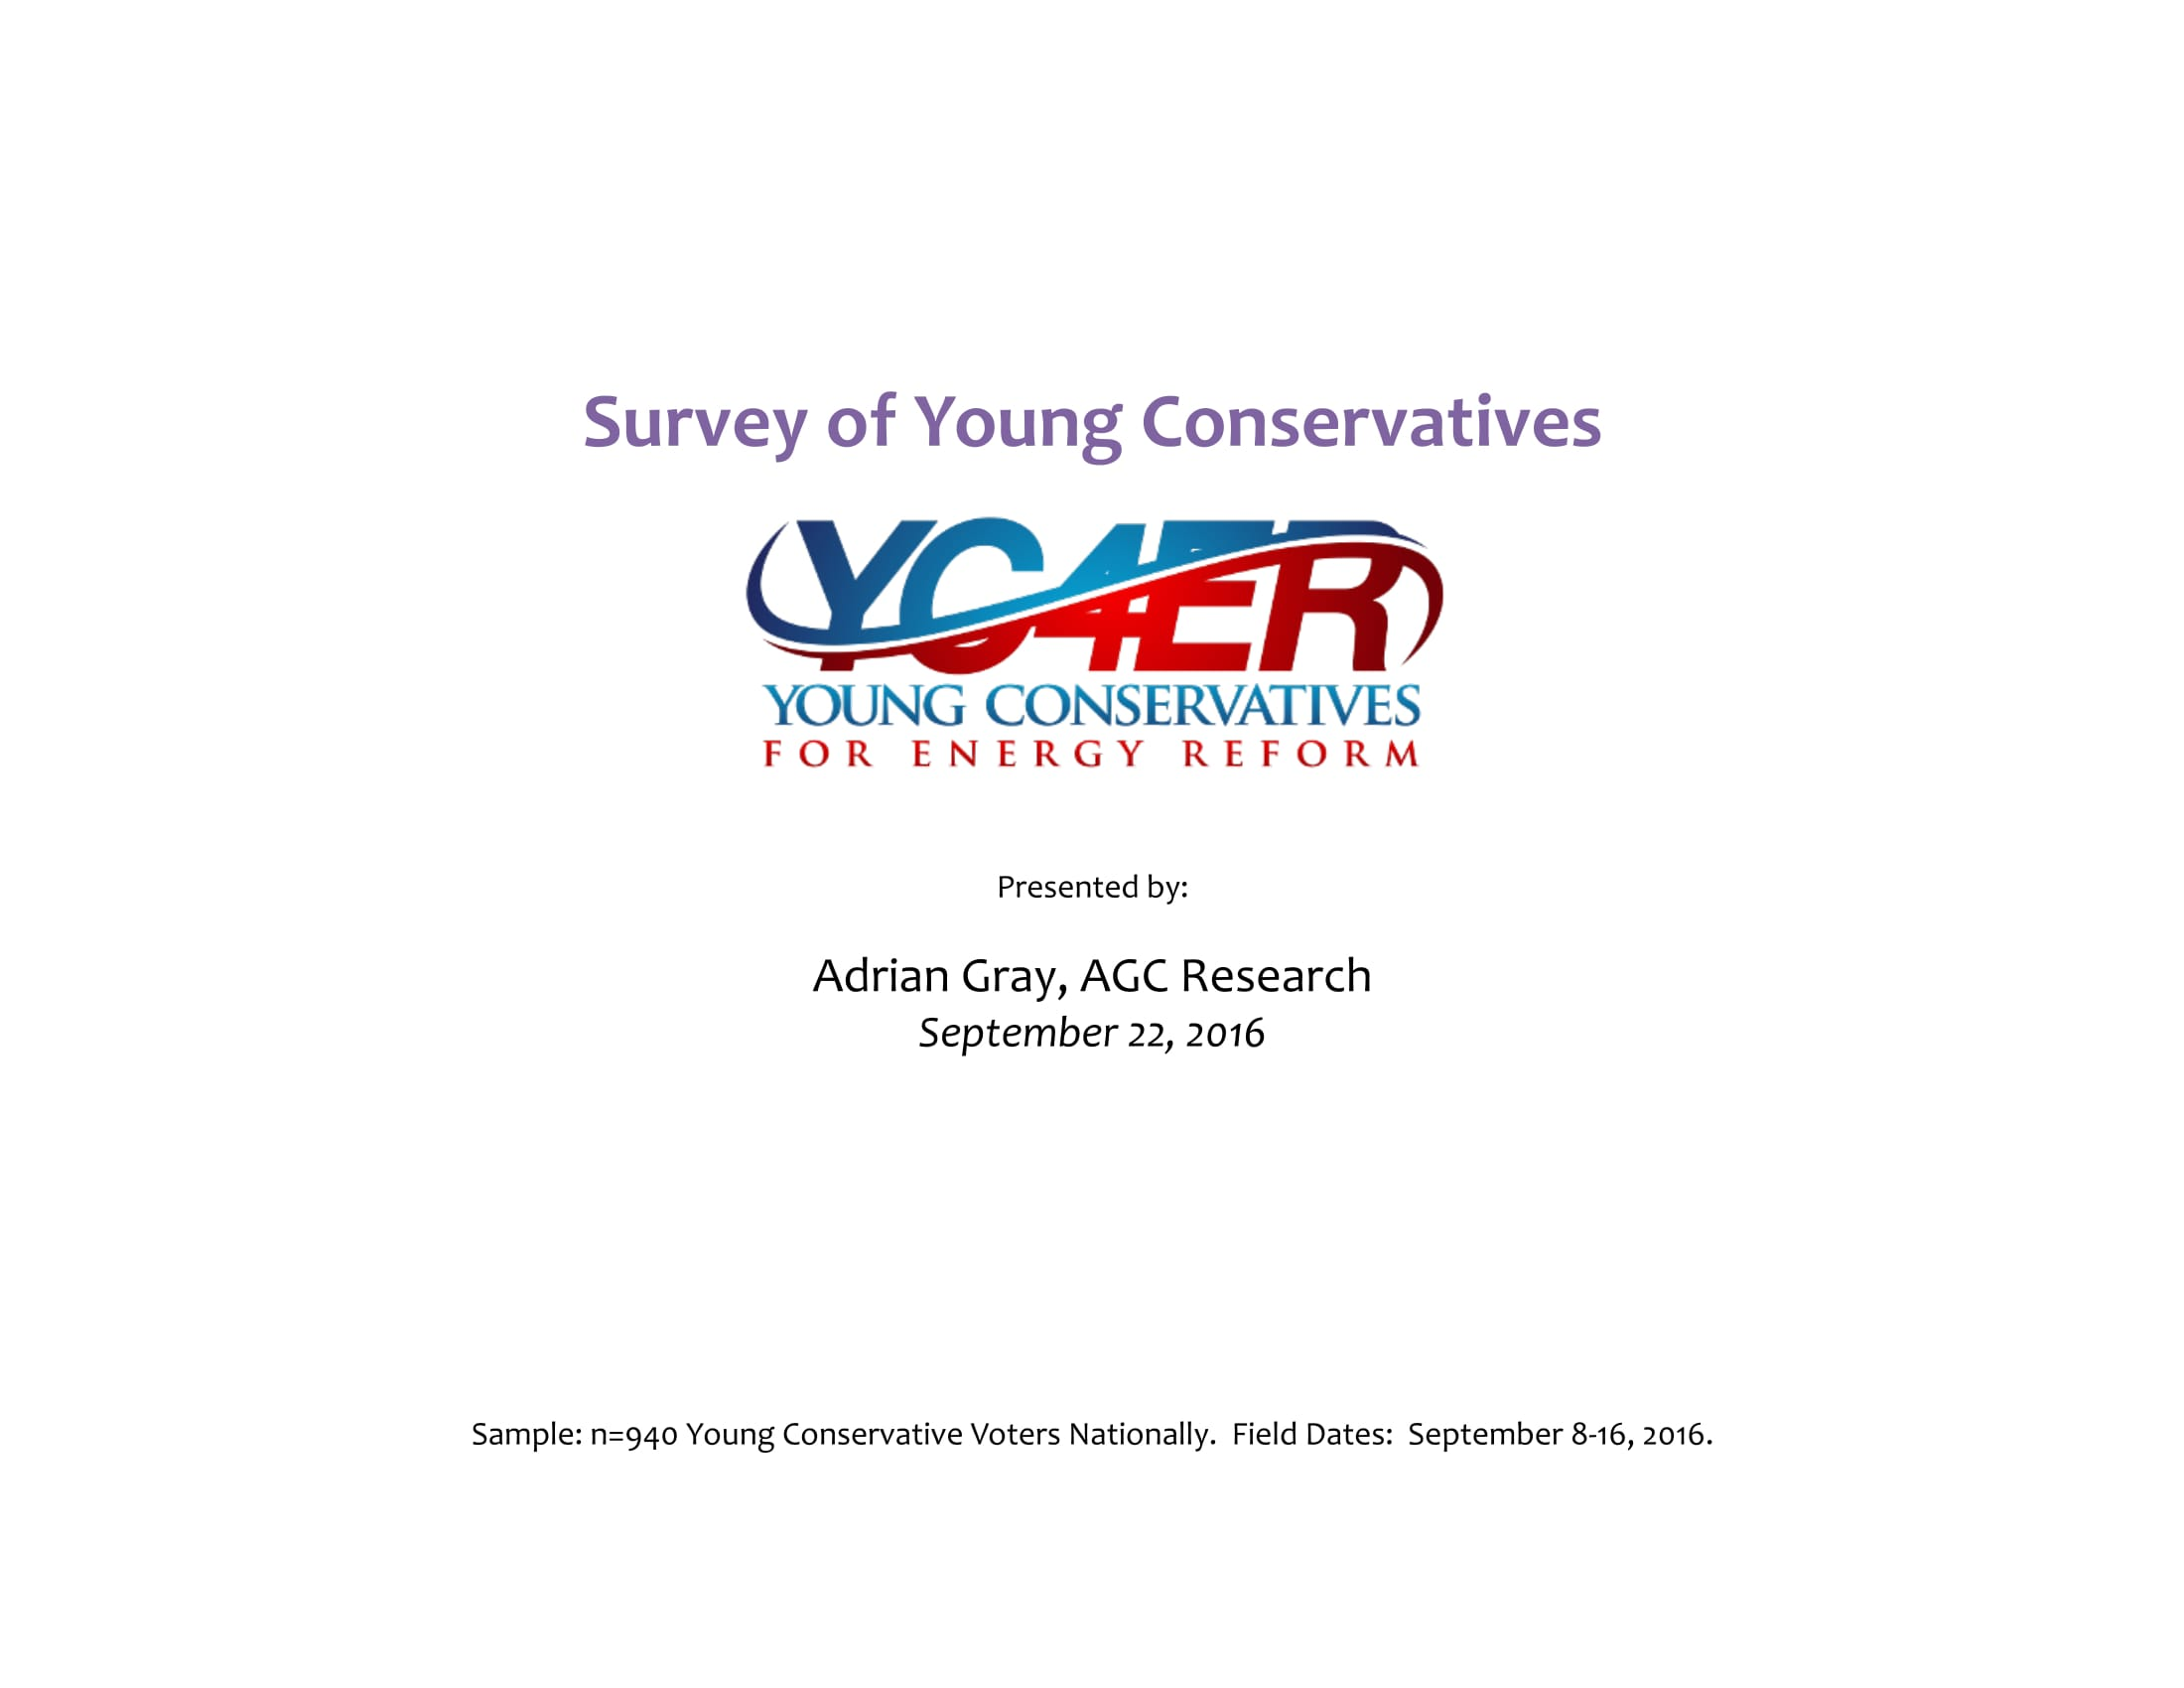 young-conservatives-survey-slides-01